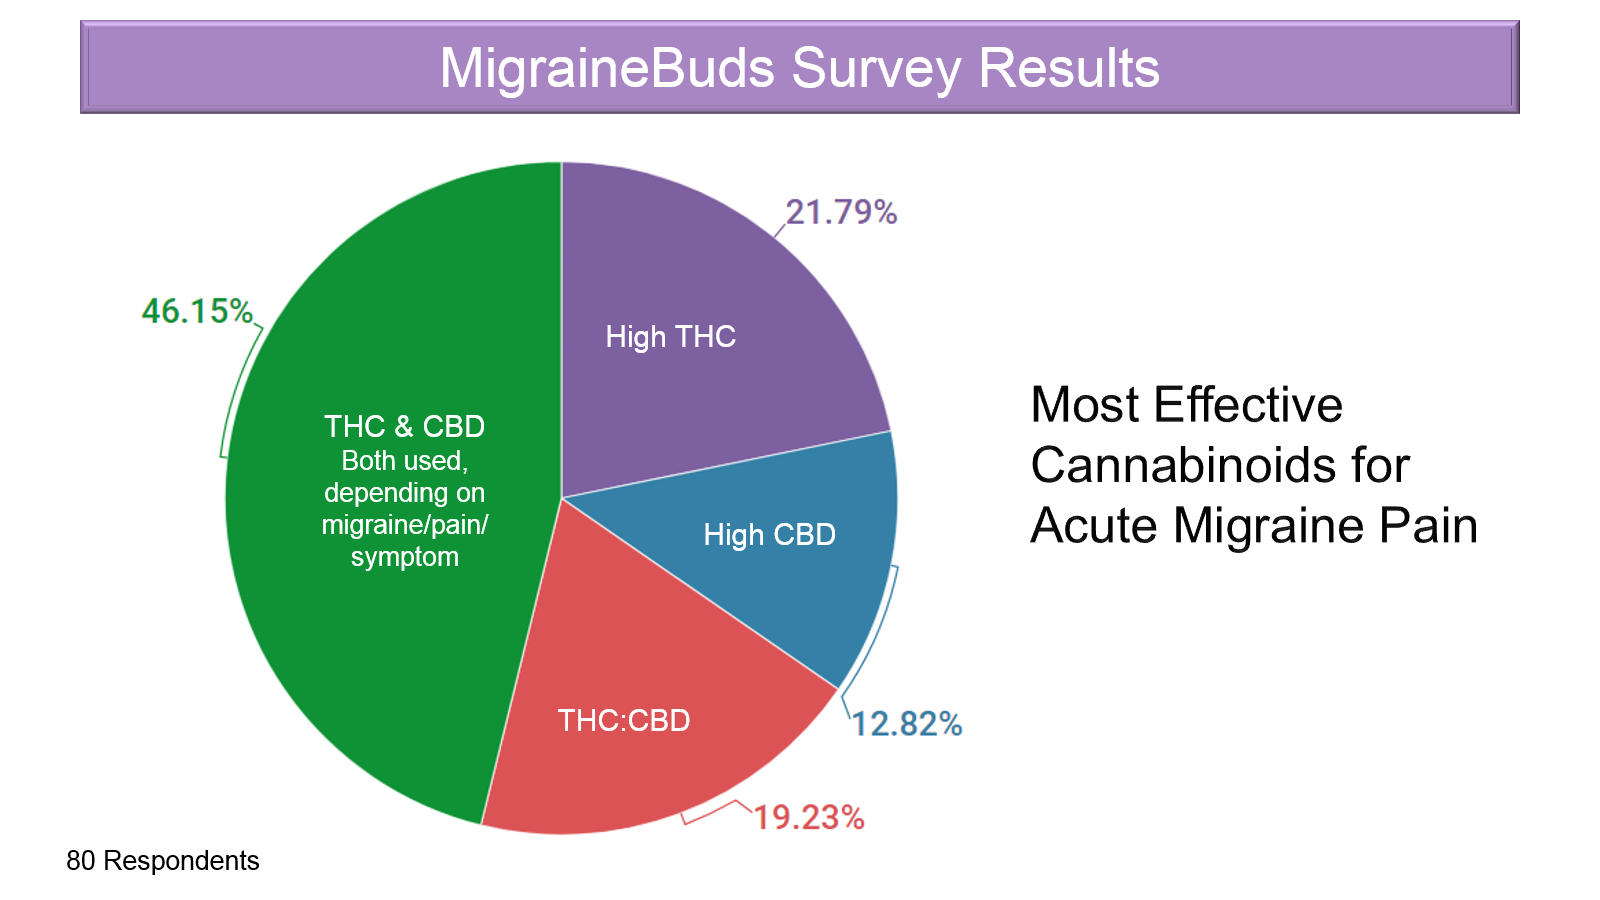 Survey Results - most effective cannabinoids for acute migraine pain